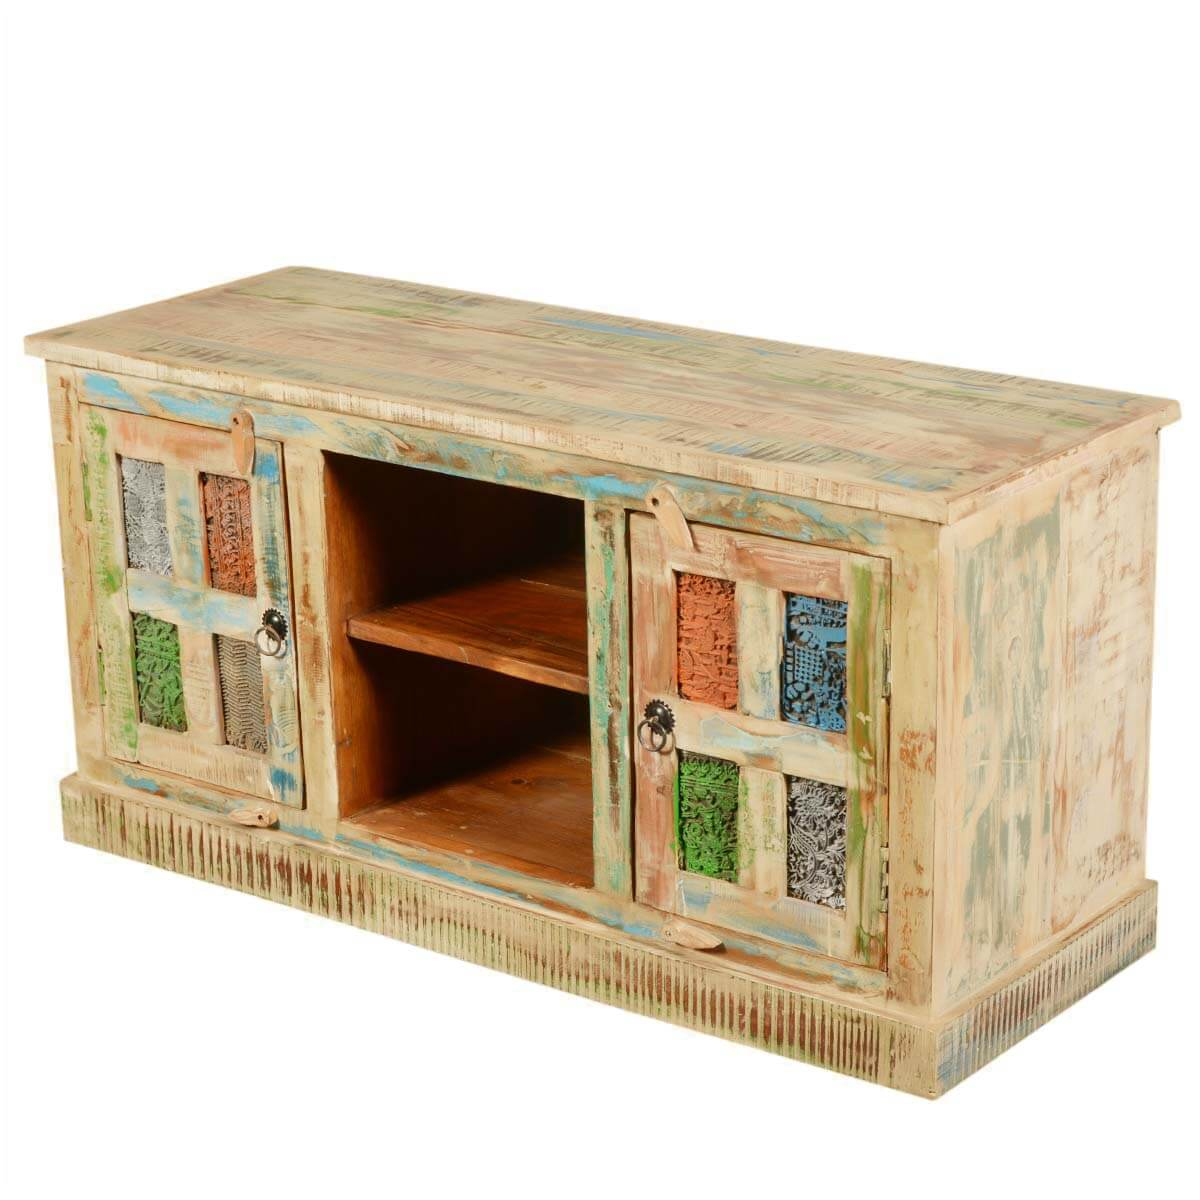 "Rainbow Windows Rustic Reclaimed Wood 47"" TV Stand Media Console"